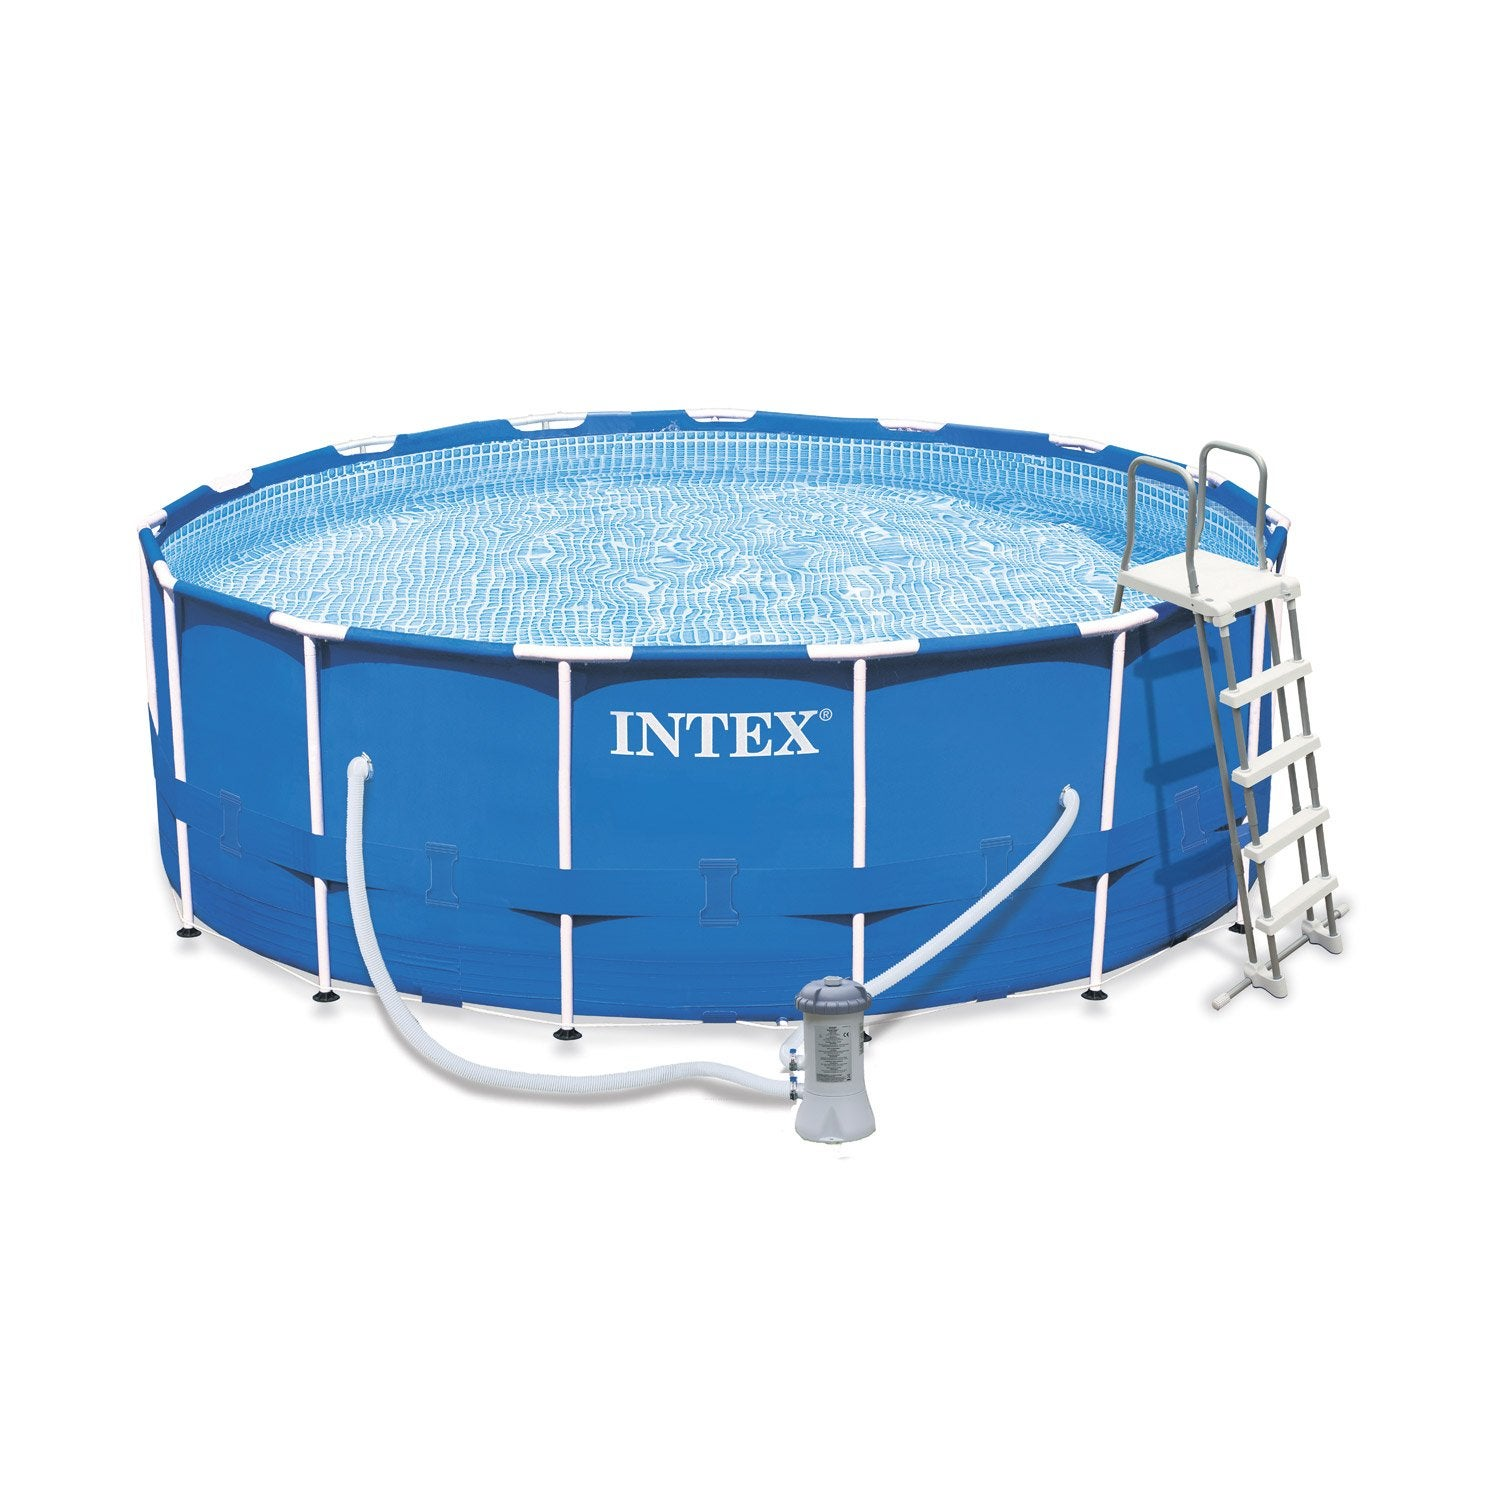 Piscine hors sol autoportante tubulaire m tal frame intex - Piscine rectangulaire hors sol intex ...